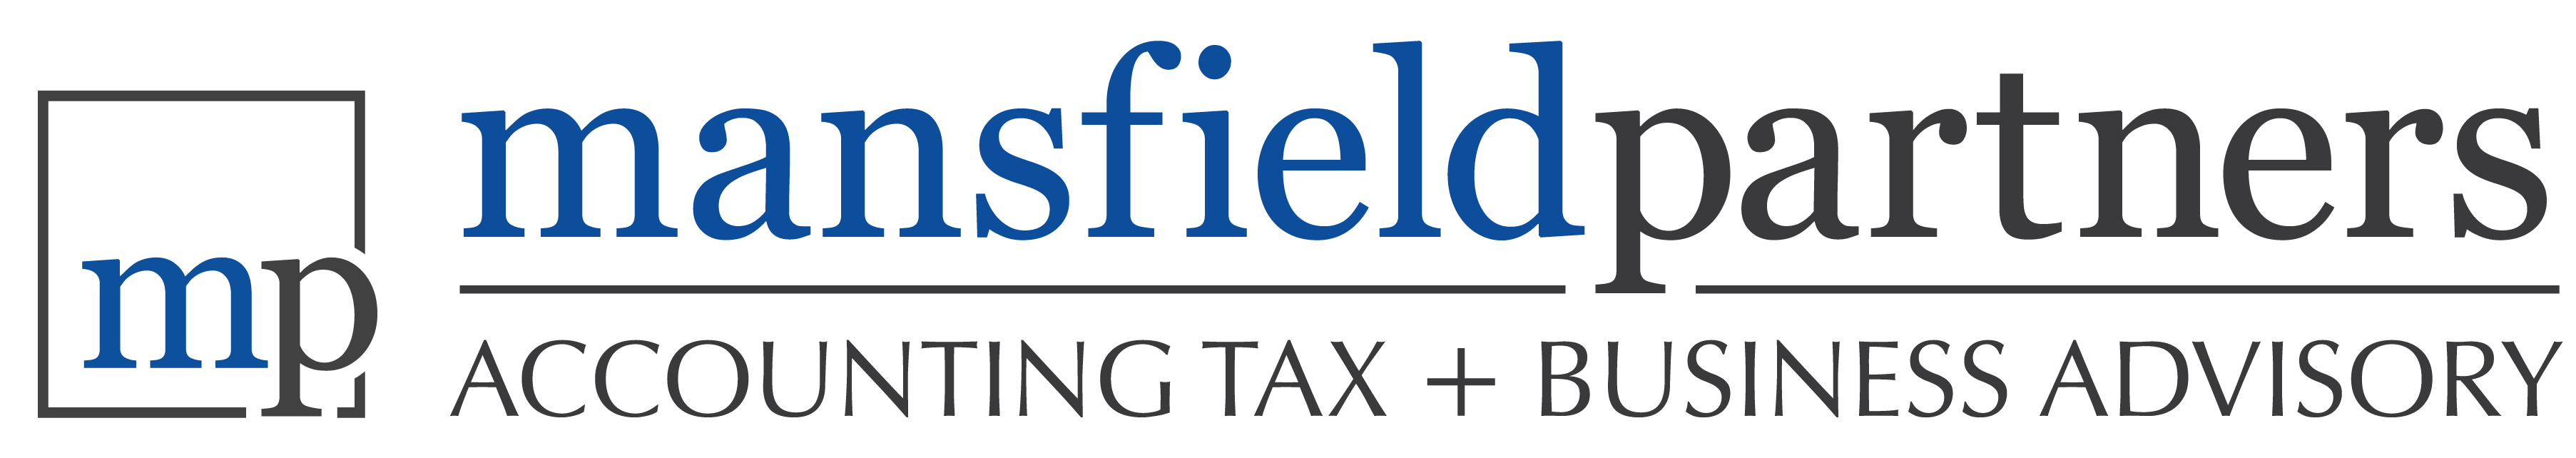 Mansfield Partners